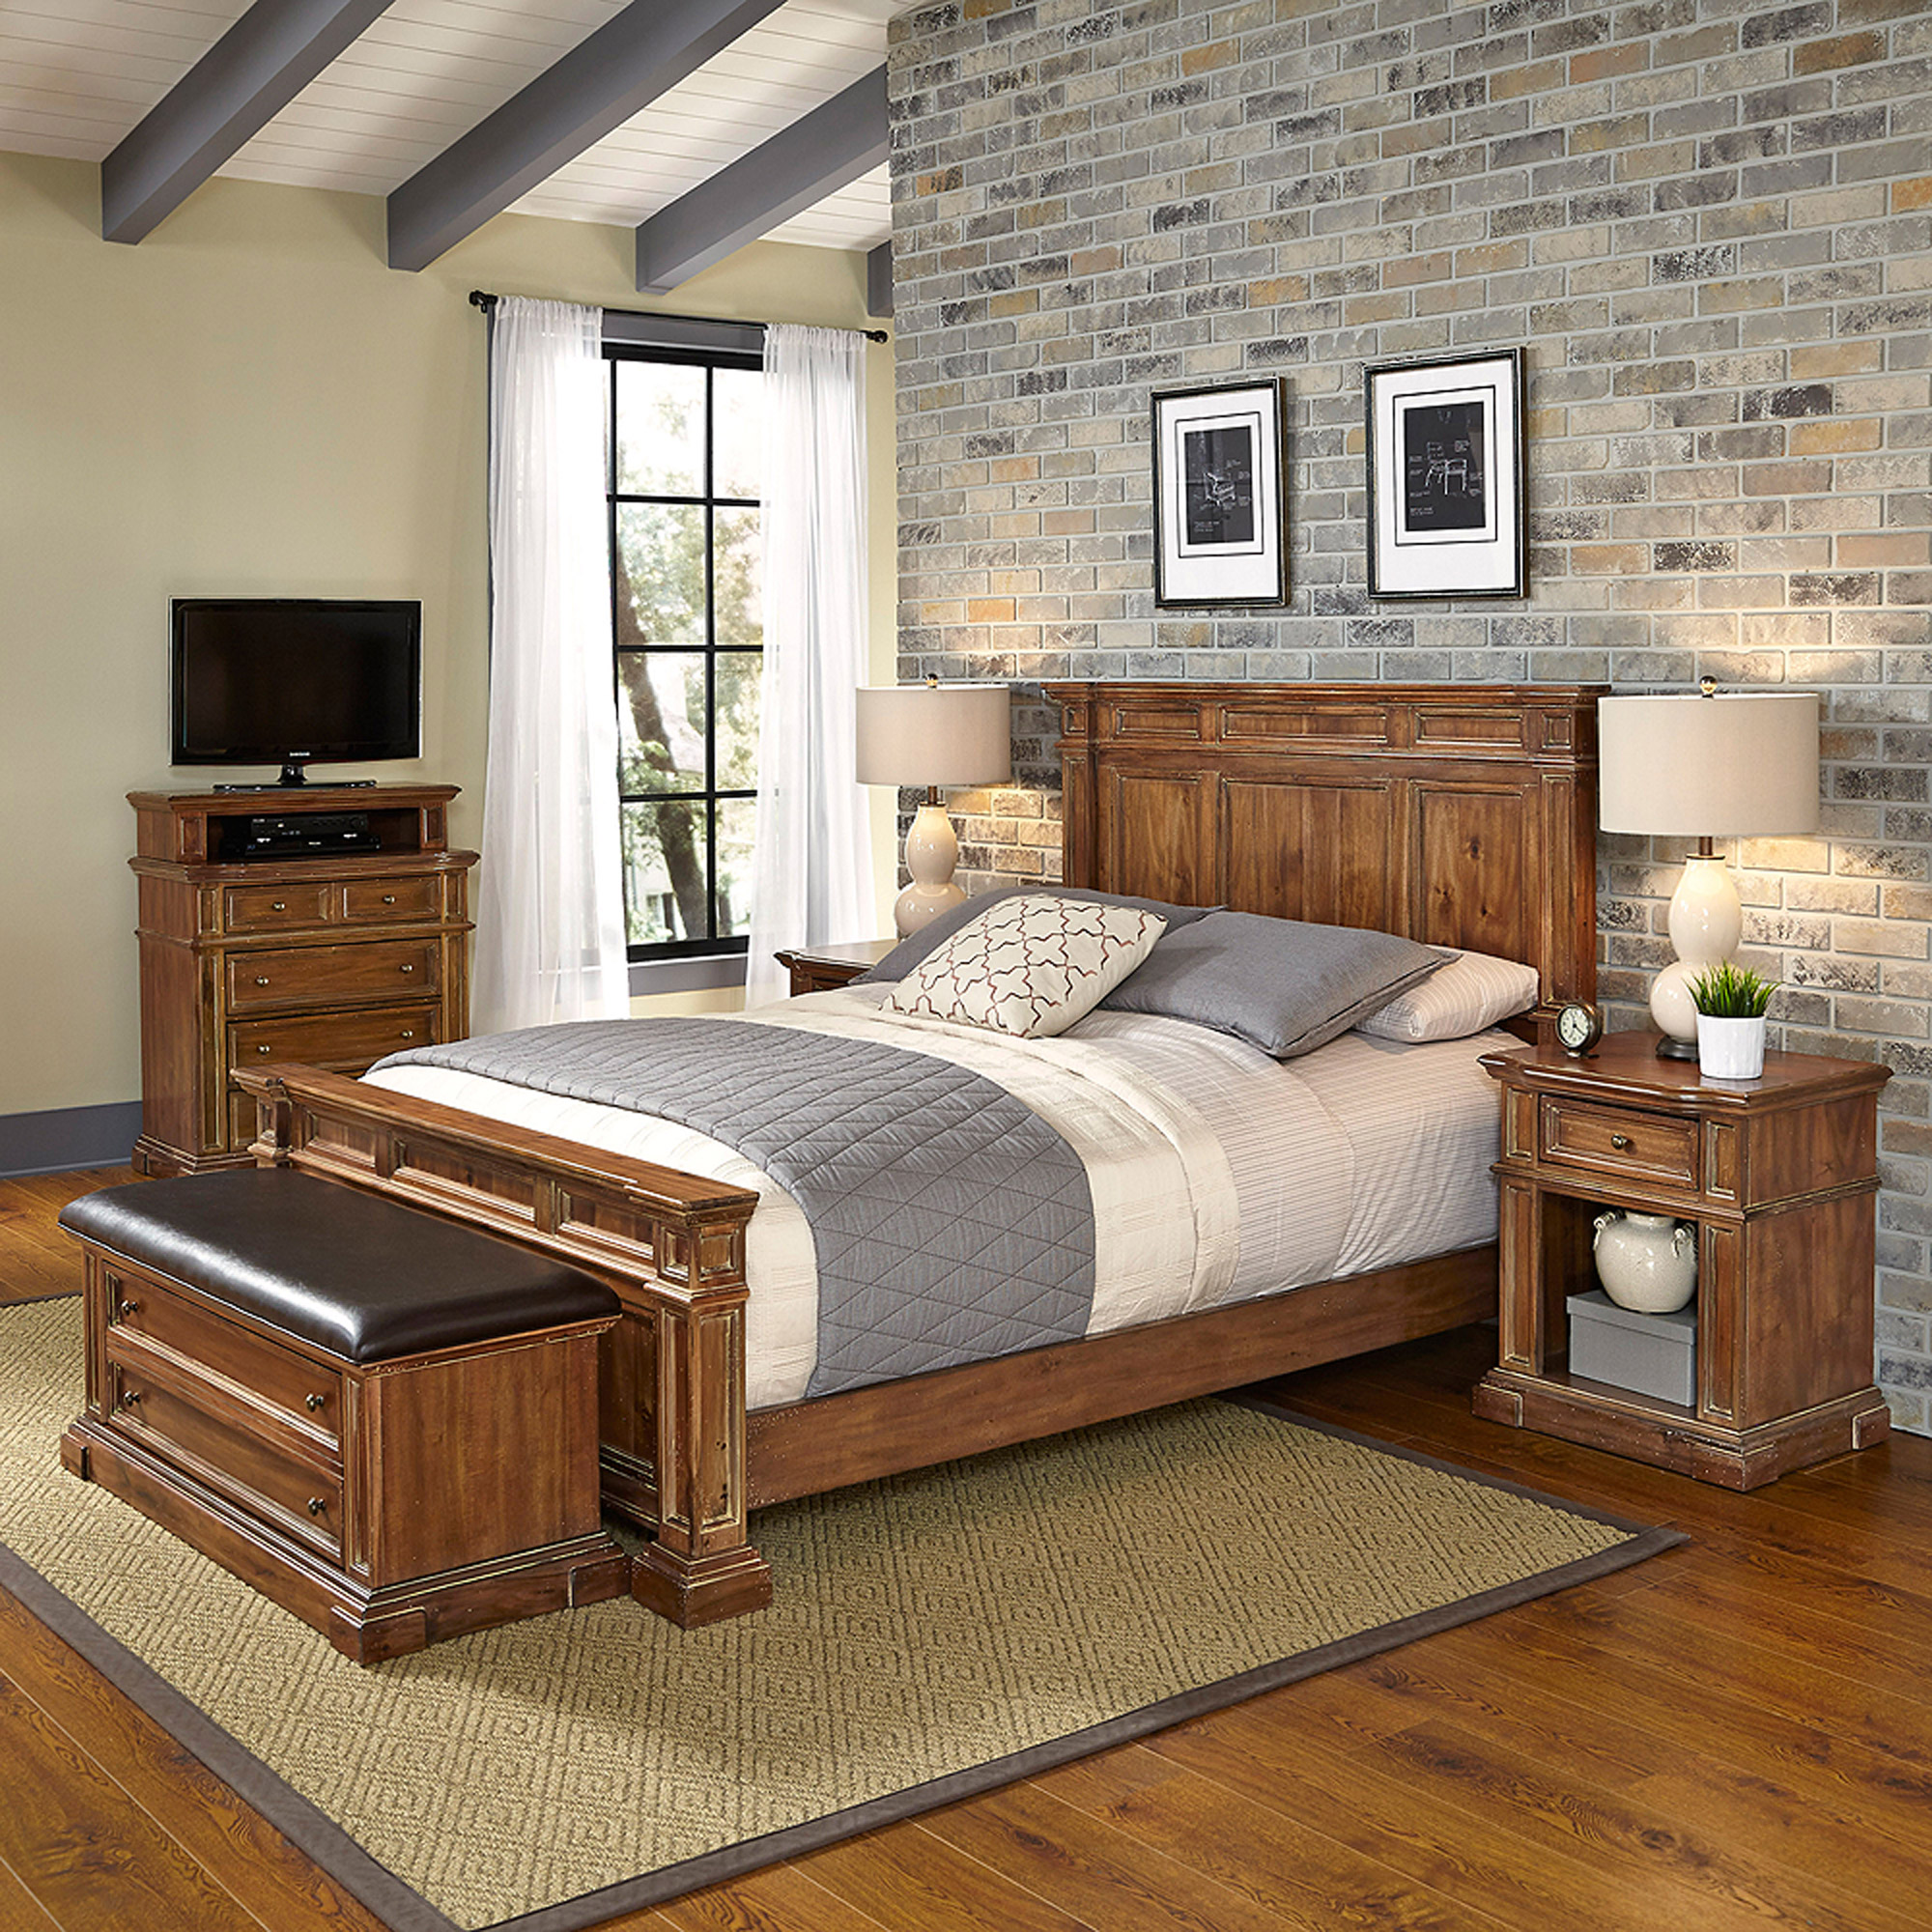 Home Styles Americana Vintage King Bed, 2 Night Stands, Media Chest and Upholstered Bench